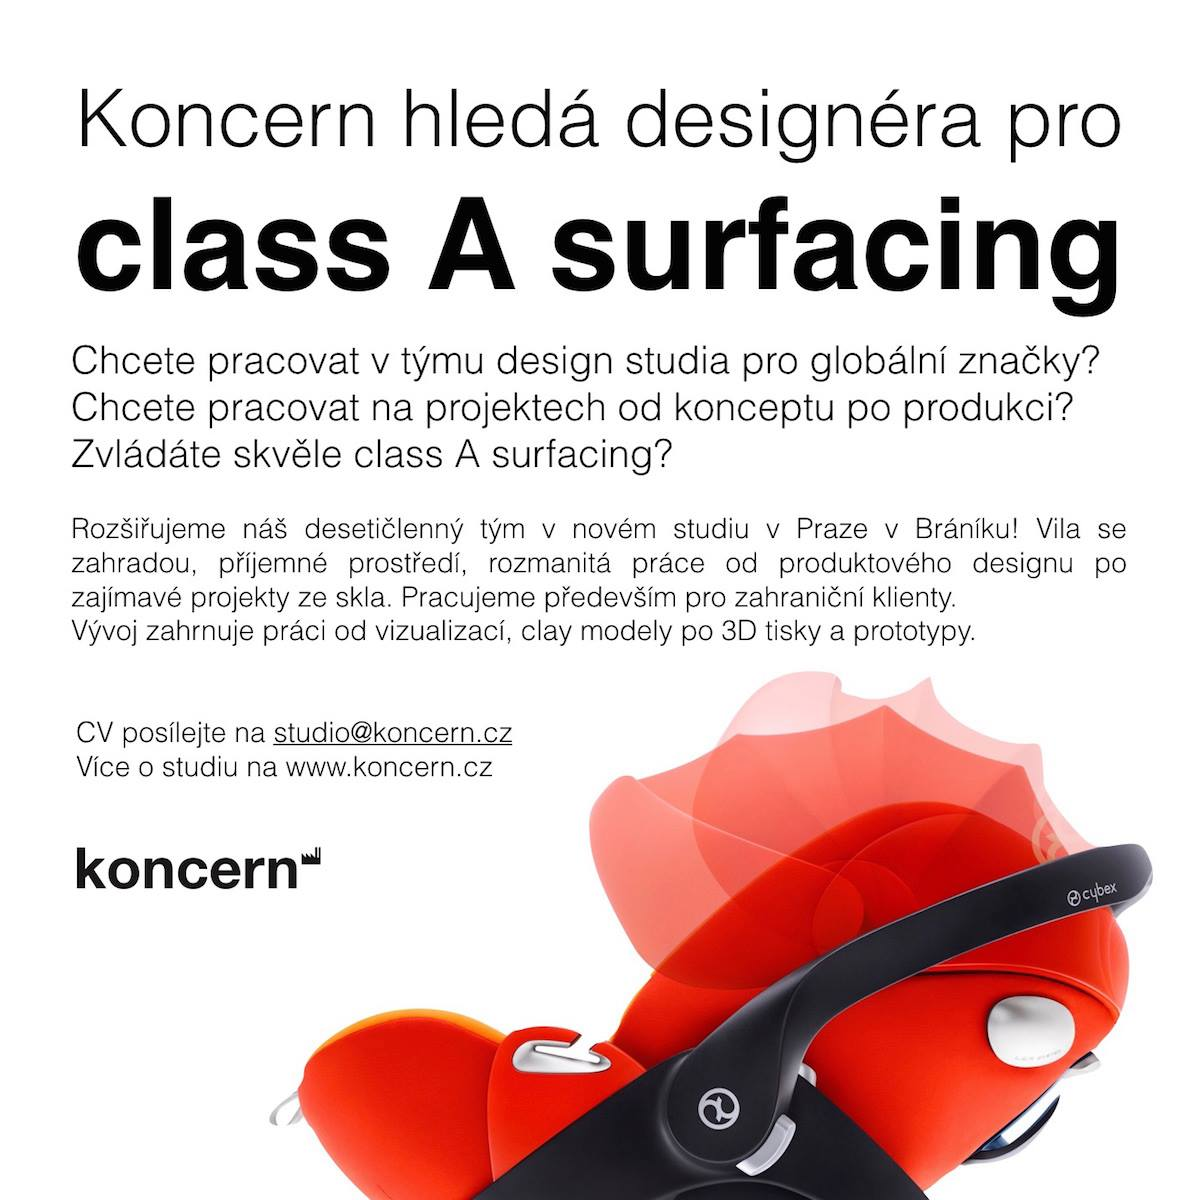 Designer for class A surfacing wanted!